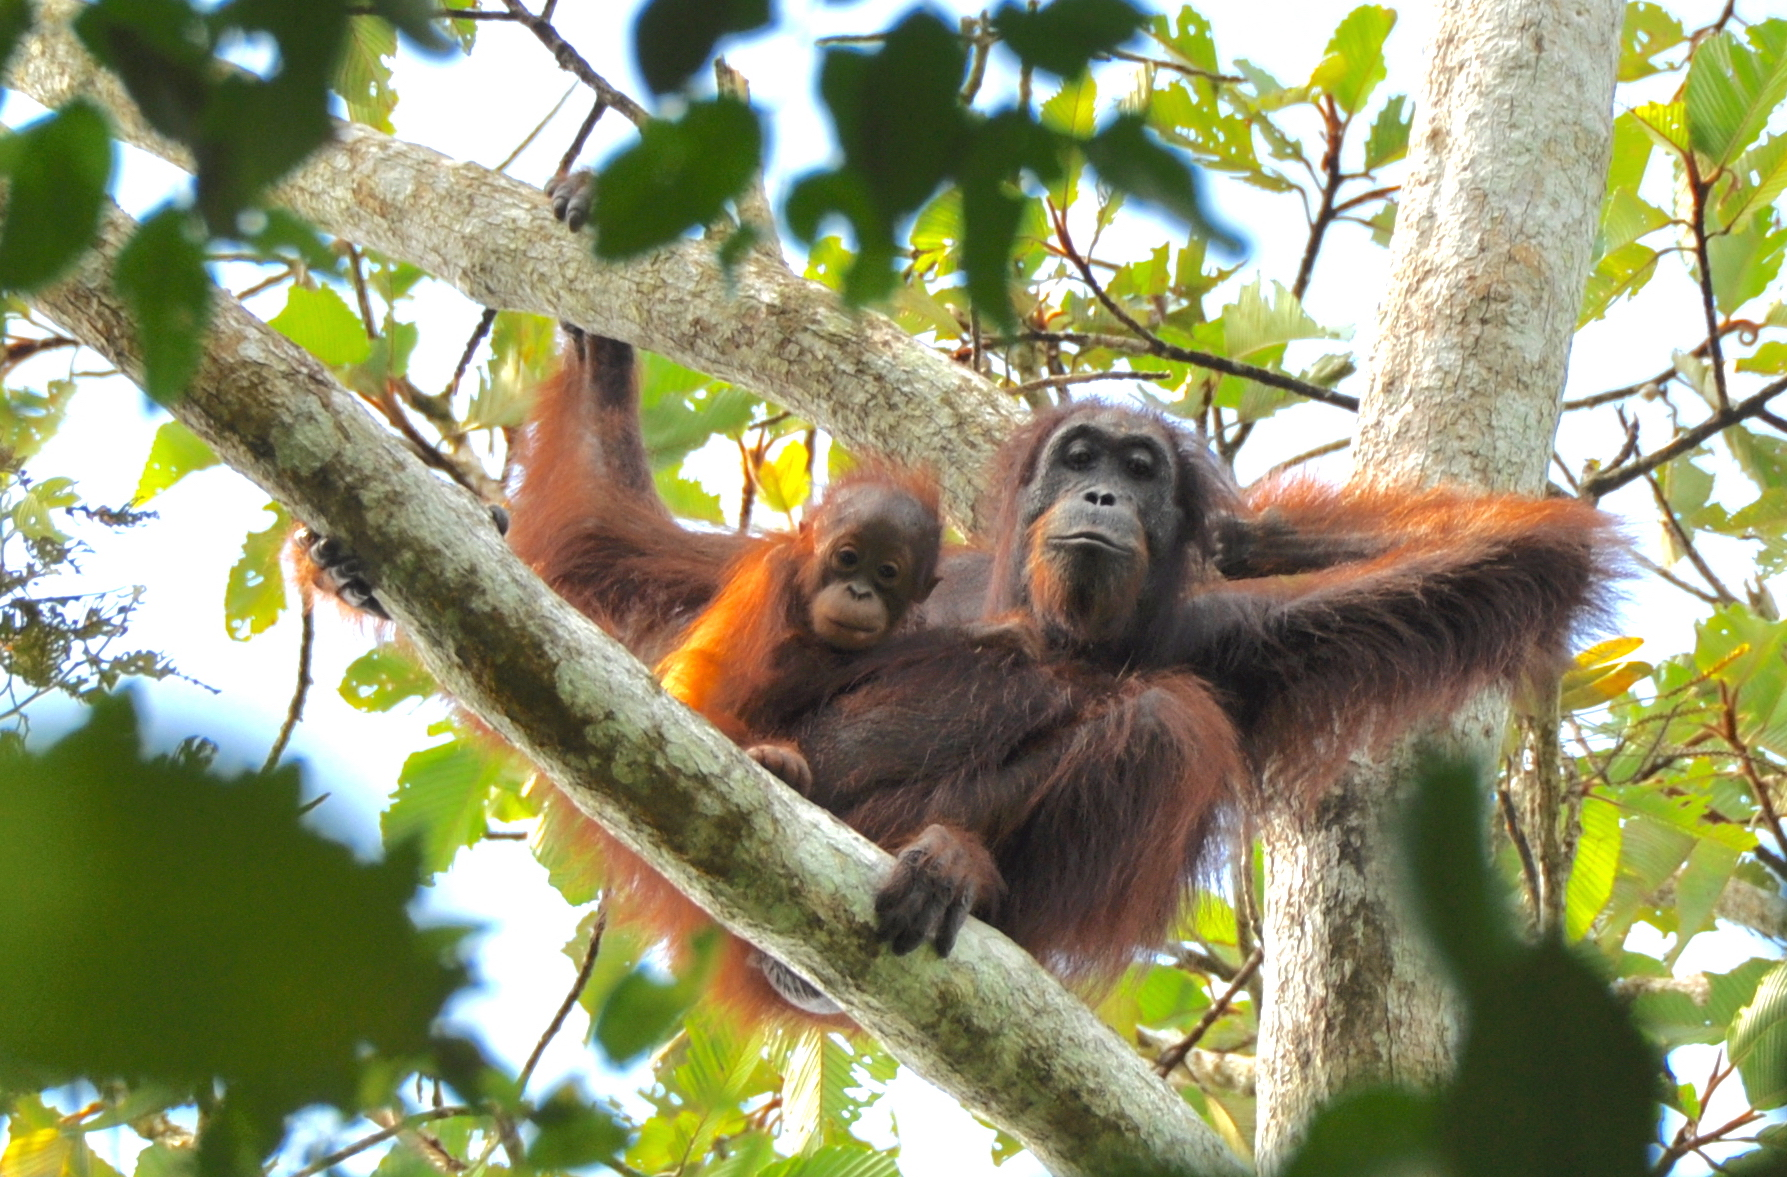 Human actions have fundamentally shaped the orangutan over thousands of years and impacted conservation efforts in the process.